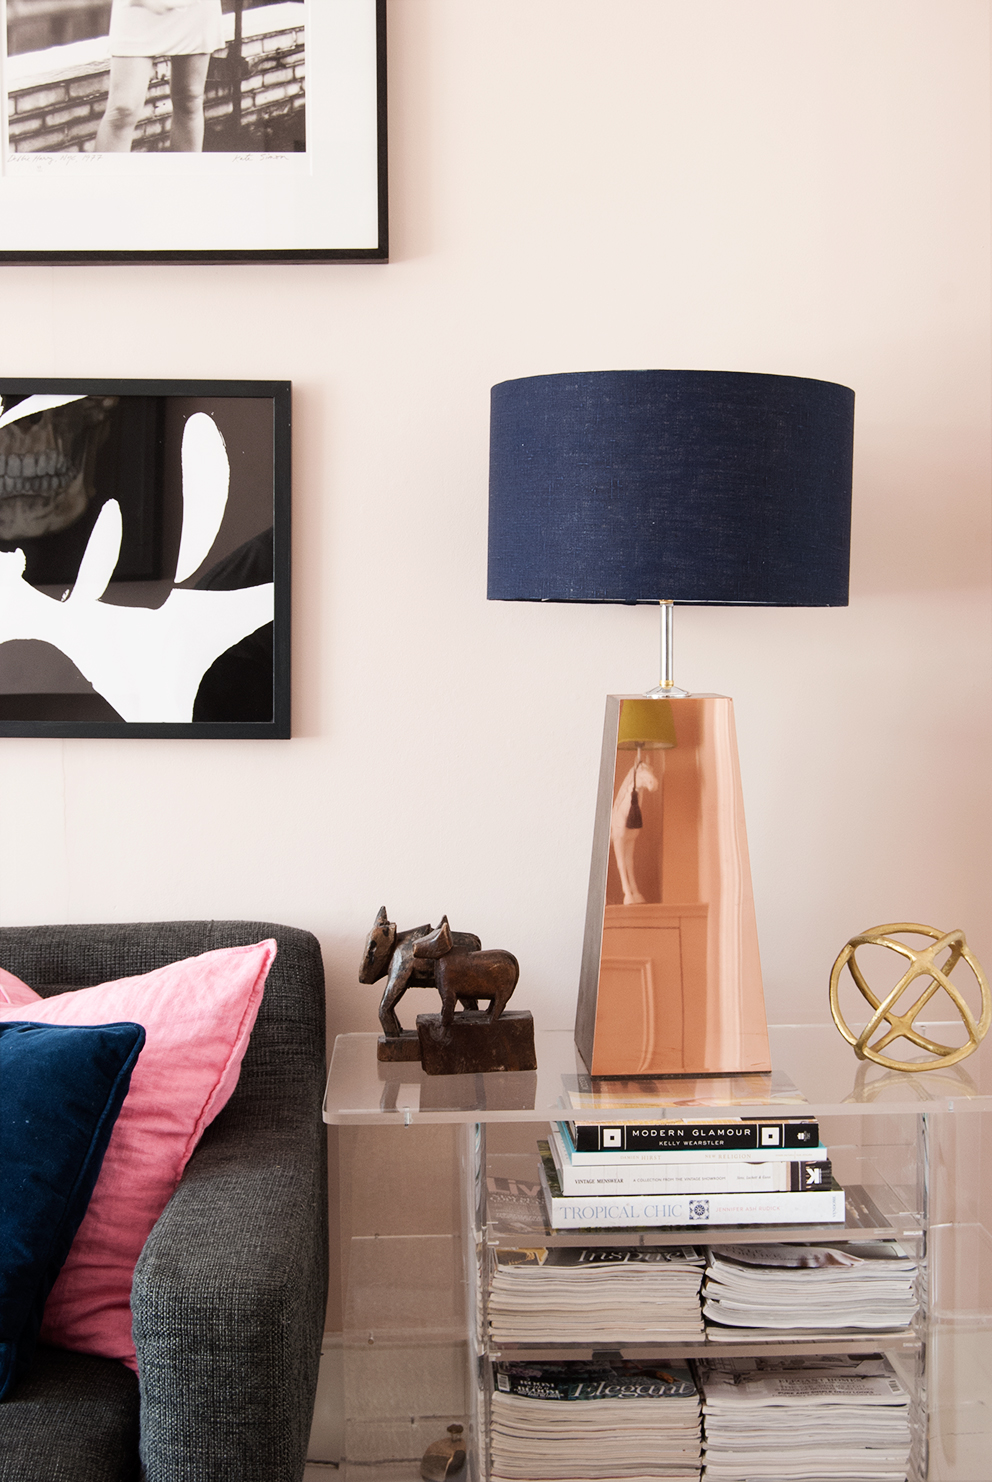 Love&Light Bespoke Luxury Lamps - French For Pineapple Blog